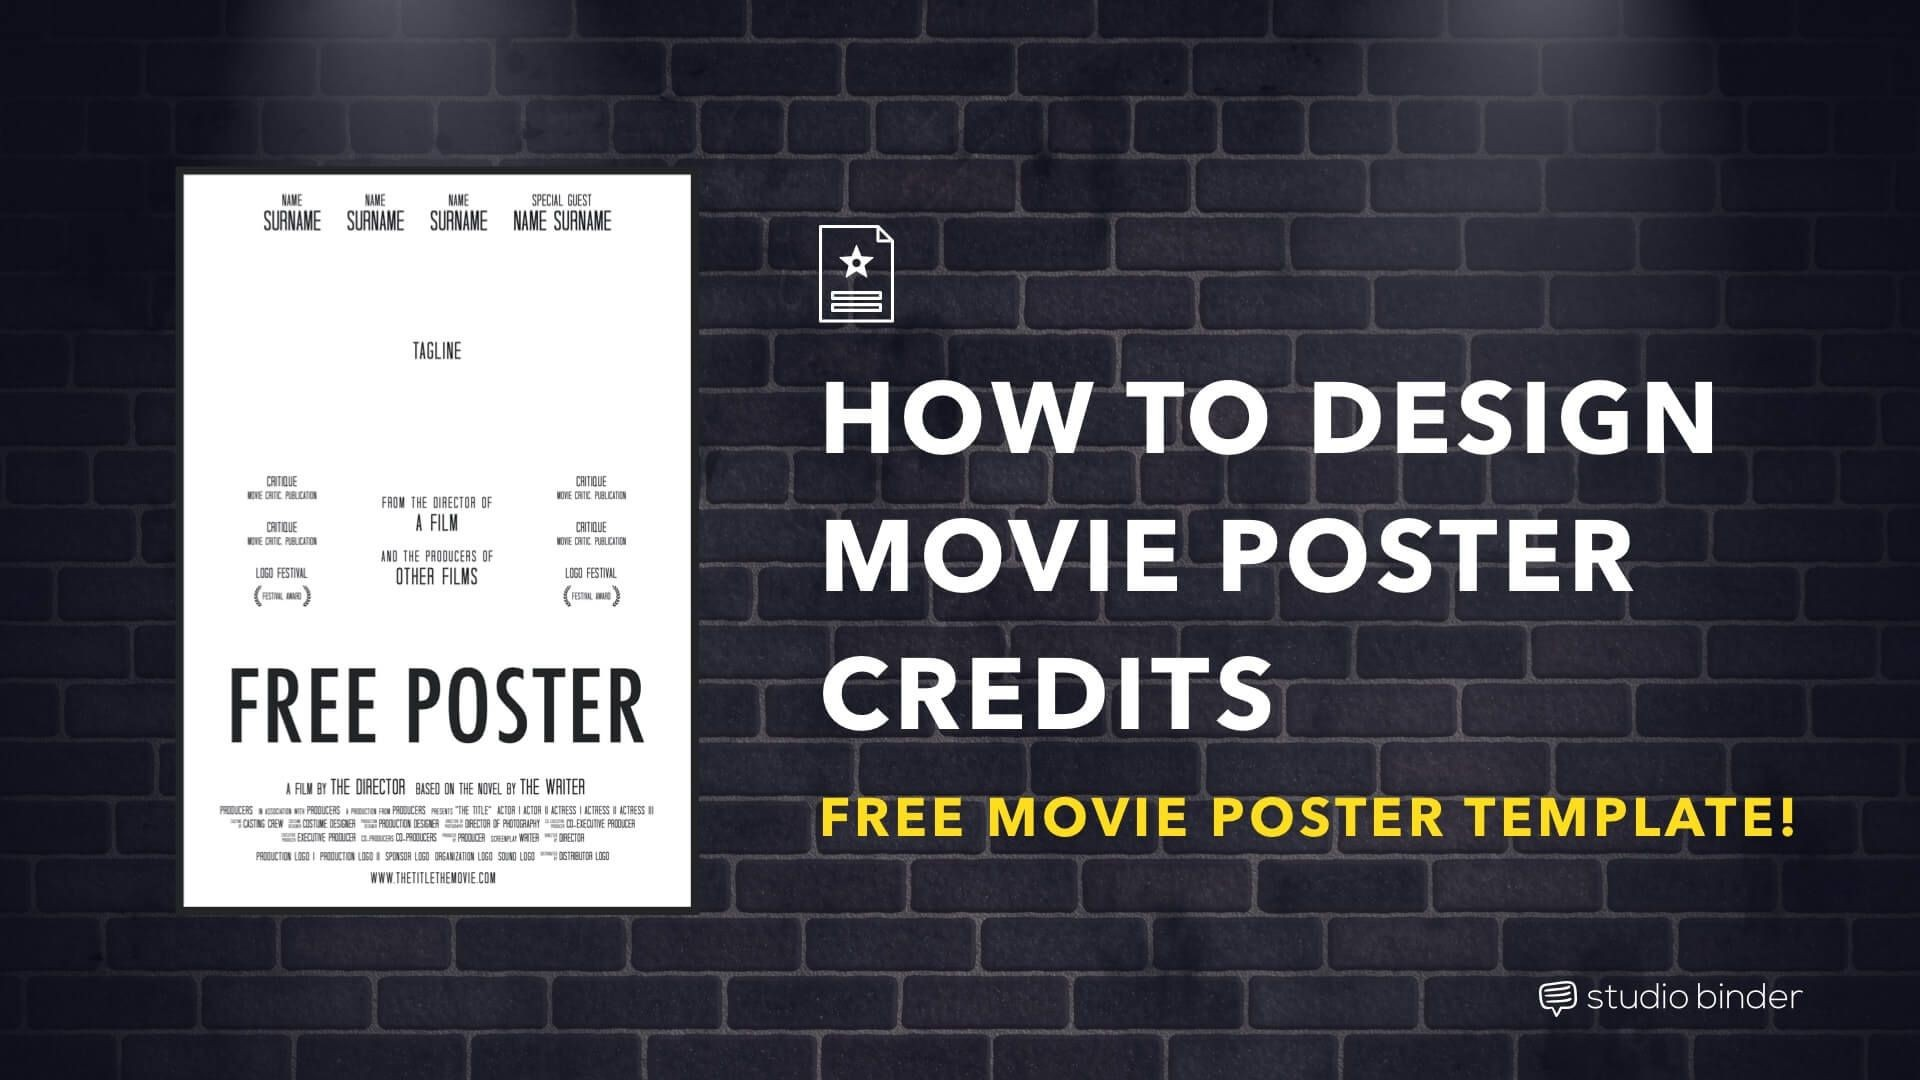 004 Exceptional Free Photoshop Movie Poster Template High Resolution  Templates1920